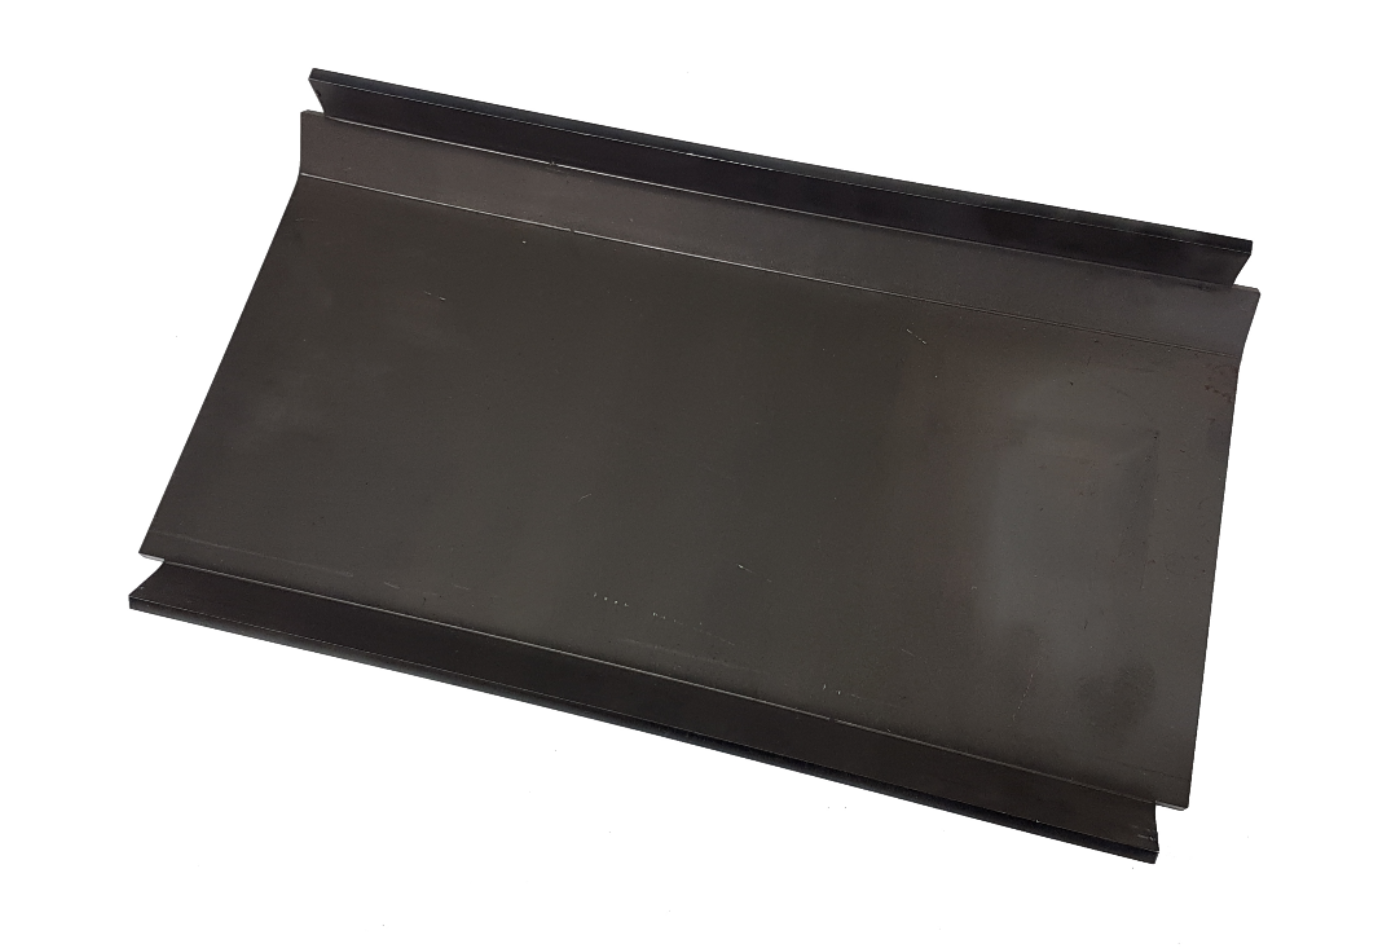 A replacement Baffle suitable for Merlin Standard stoves.